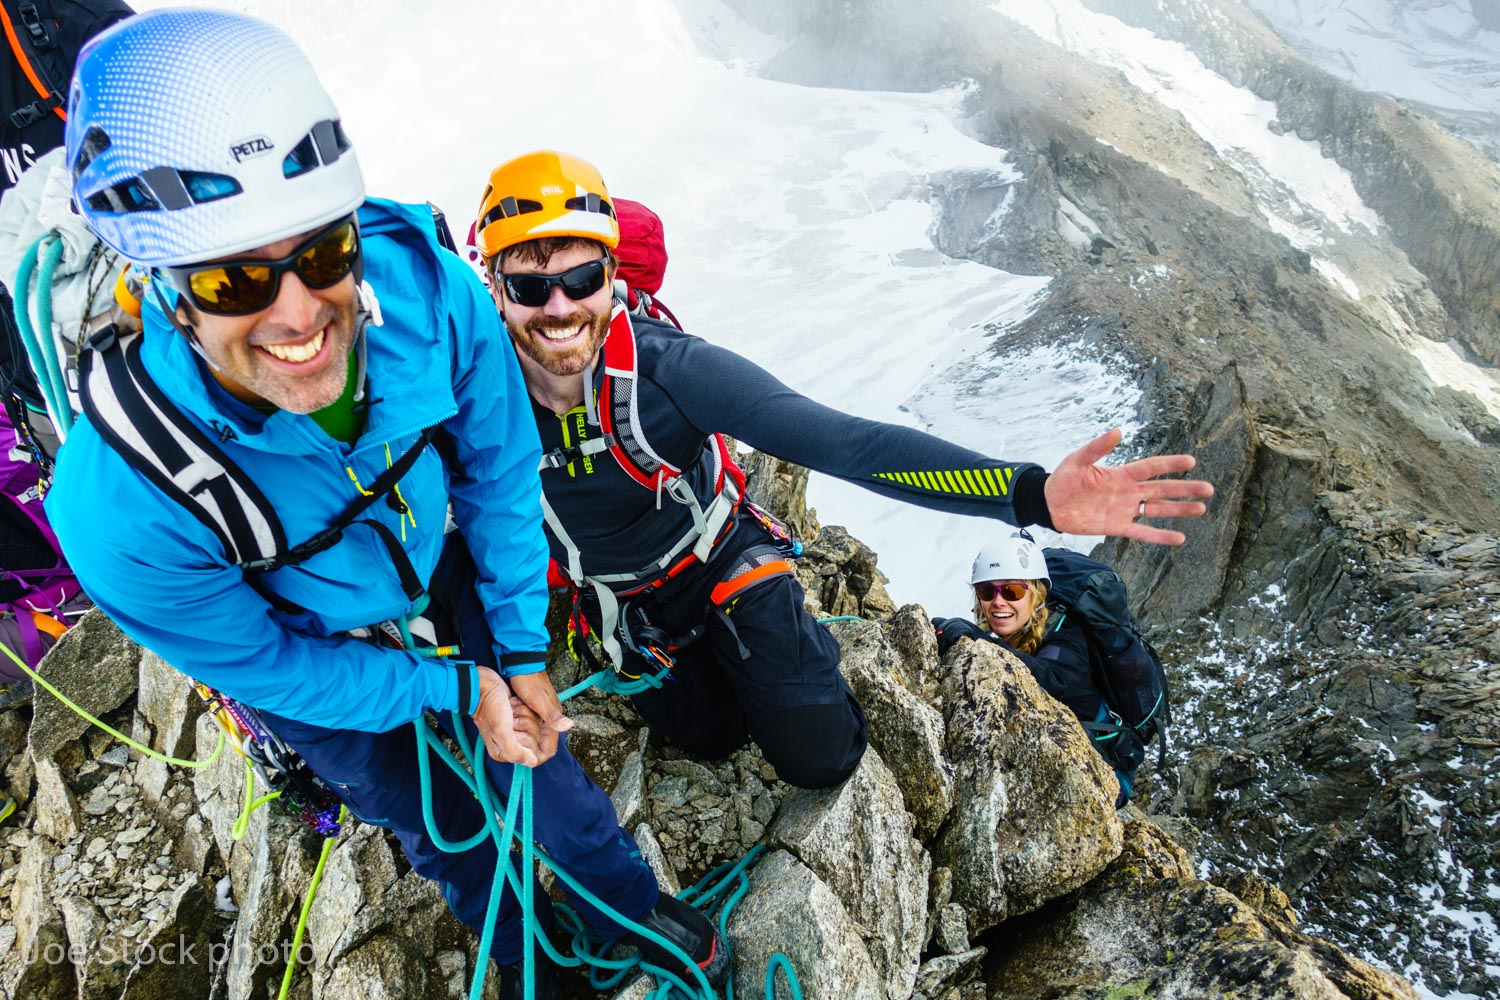 My co-worder, US IFMGA Mountain Guide Tico Allulee, with Luke Robertson and Hazel Robertson on the Aiguilles Marbrees near the Trient Refuge. This was our acclimatizing day for a Mont-Blanc week organized by Becca and Al who I skied with on a  2016 Denali Ski Base Camp .